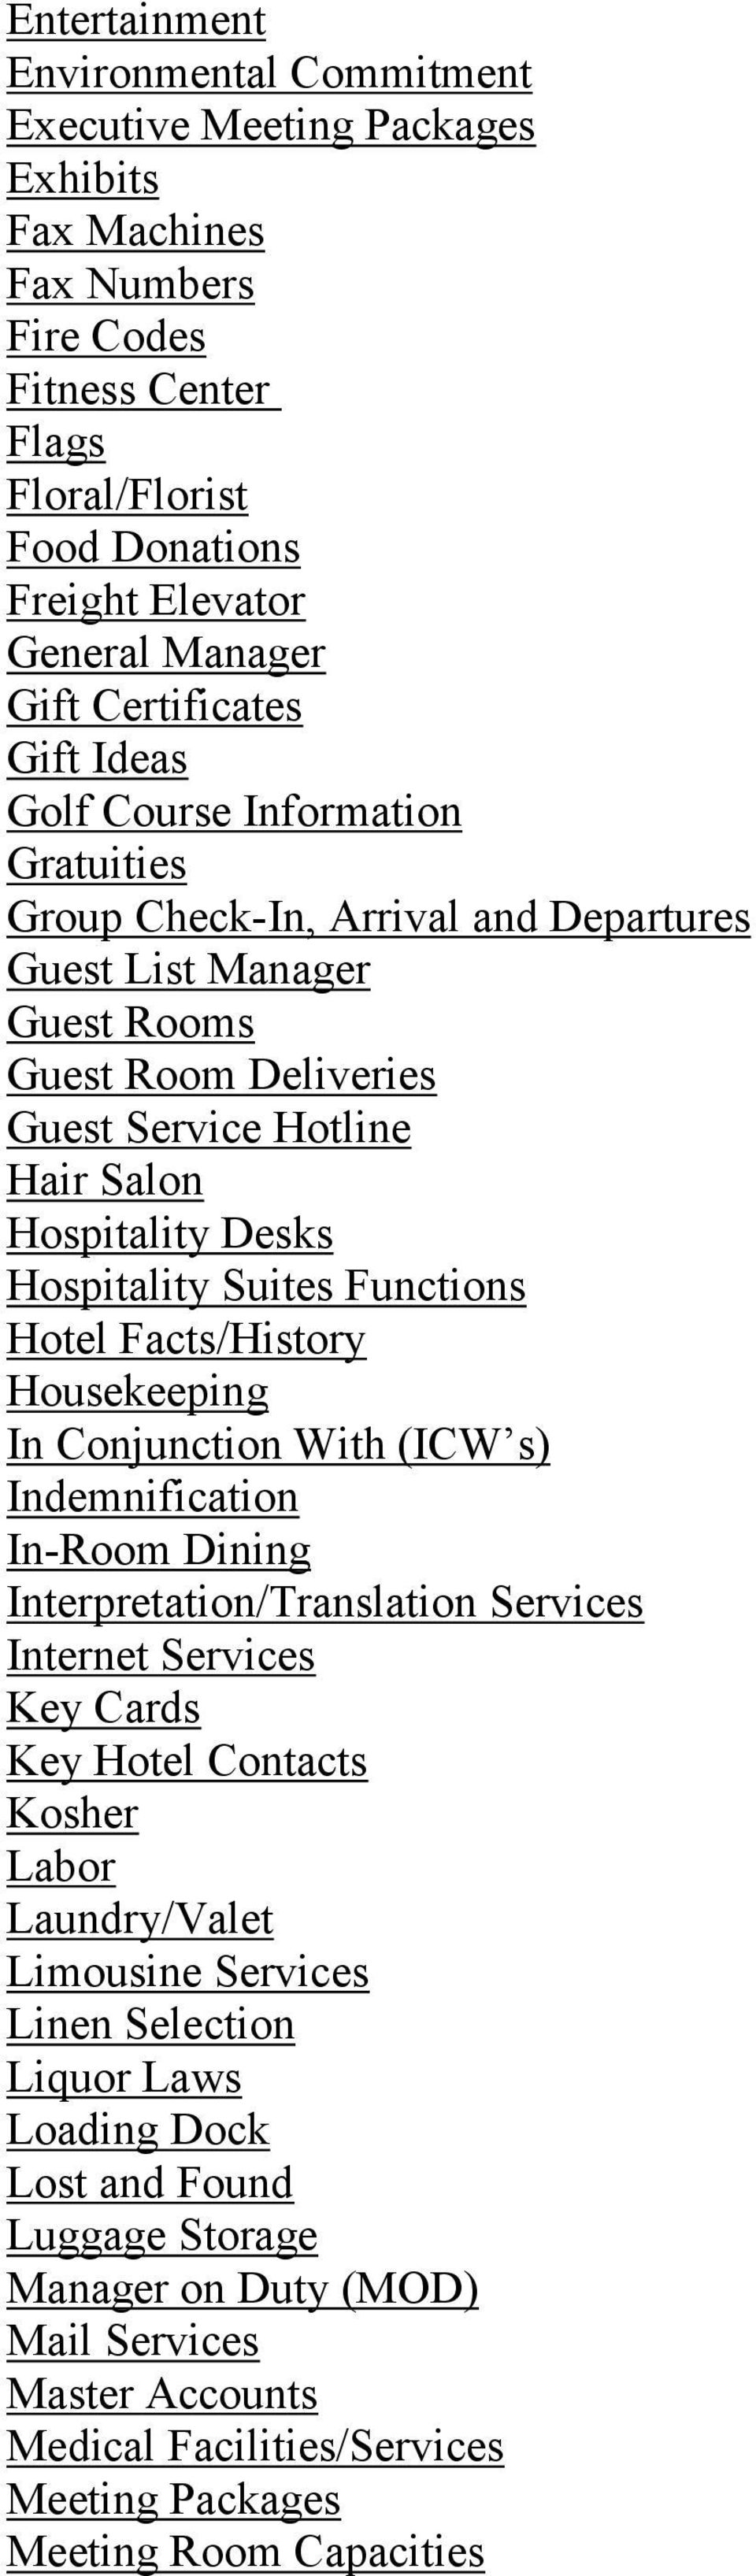 Desks Hospitality Suites Functions Hotel Facts/History Housekeeping In Conjunction With (ICW s) Indemnification In-Room Dining Interpretation/Translation Services Internet Services Key Cards Key